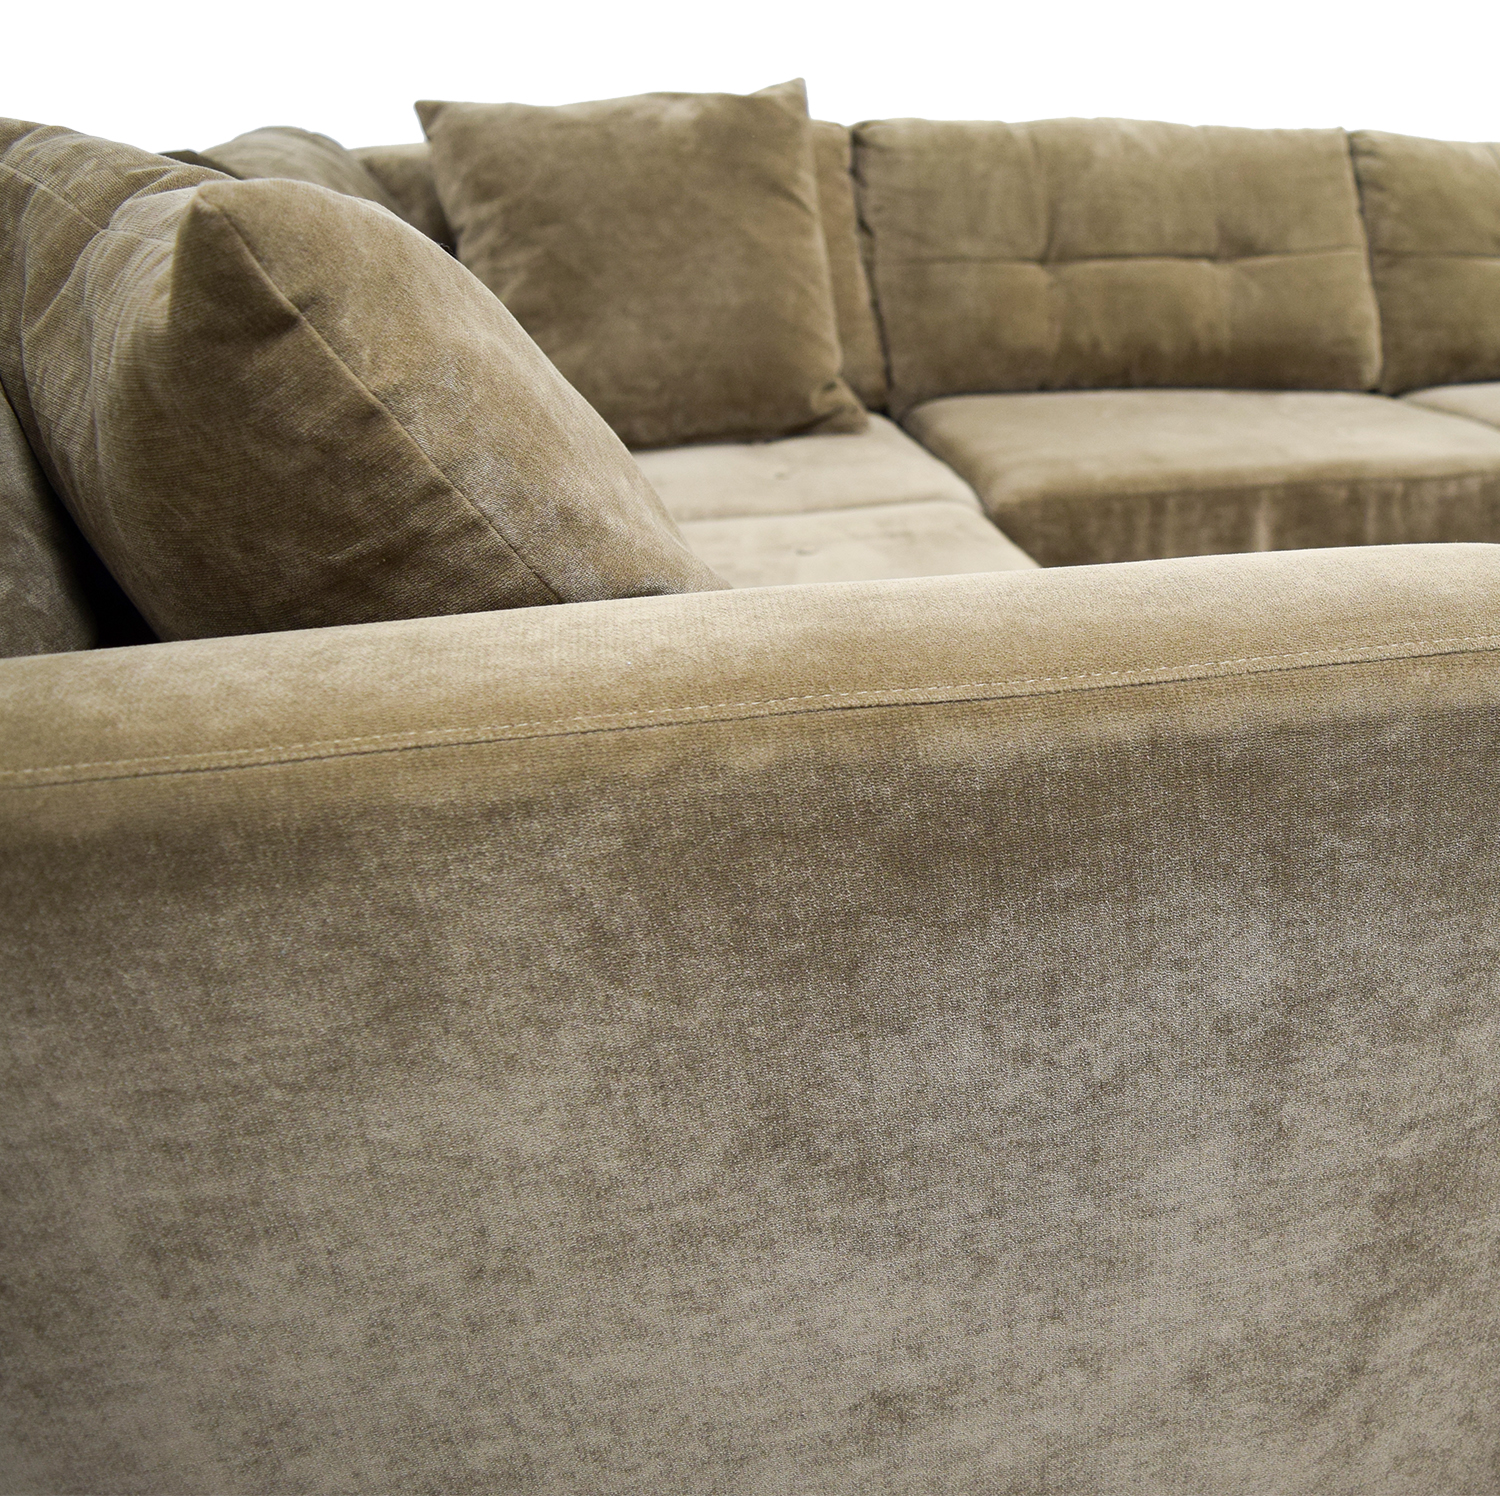 macy s elliot sofa low sectional 76 off 39s fabric microfiber two piece